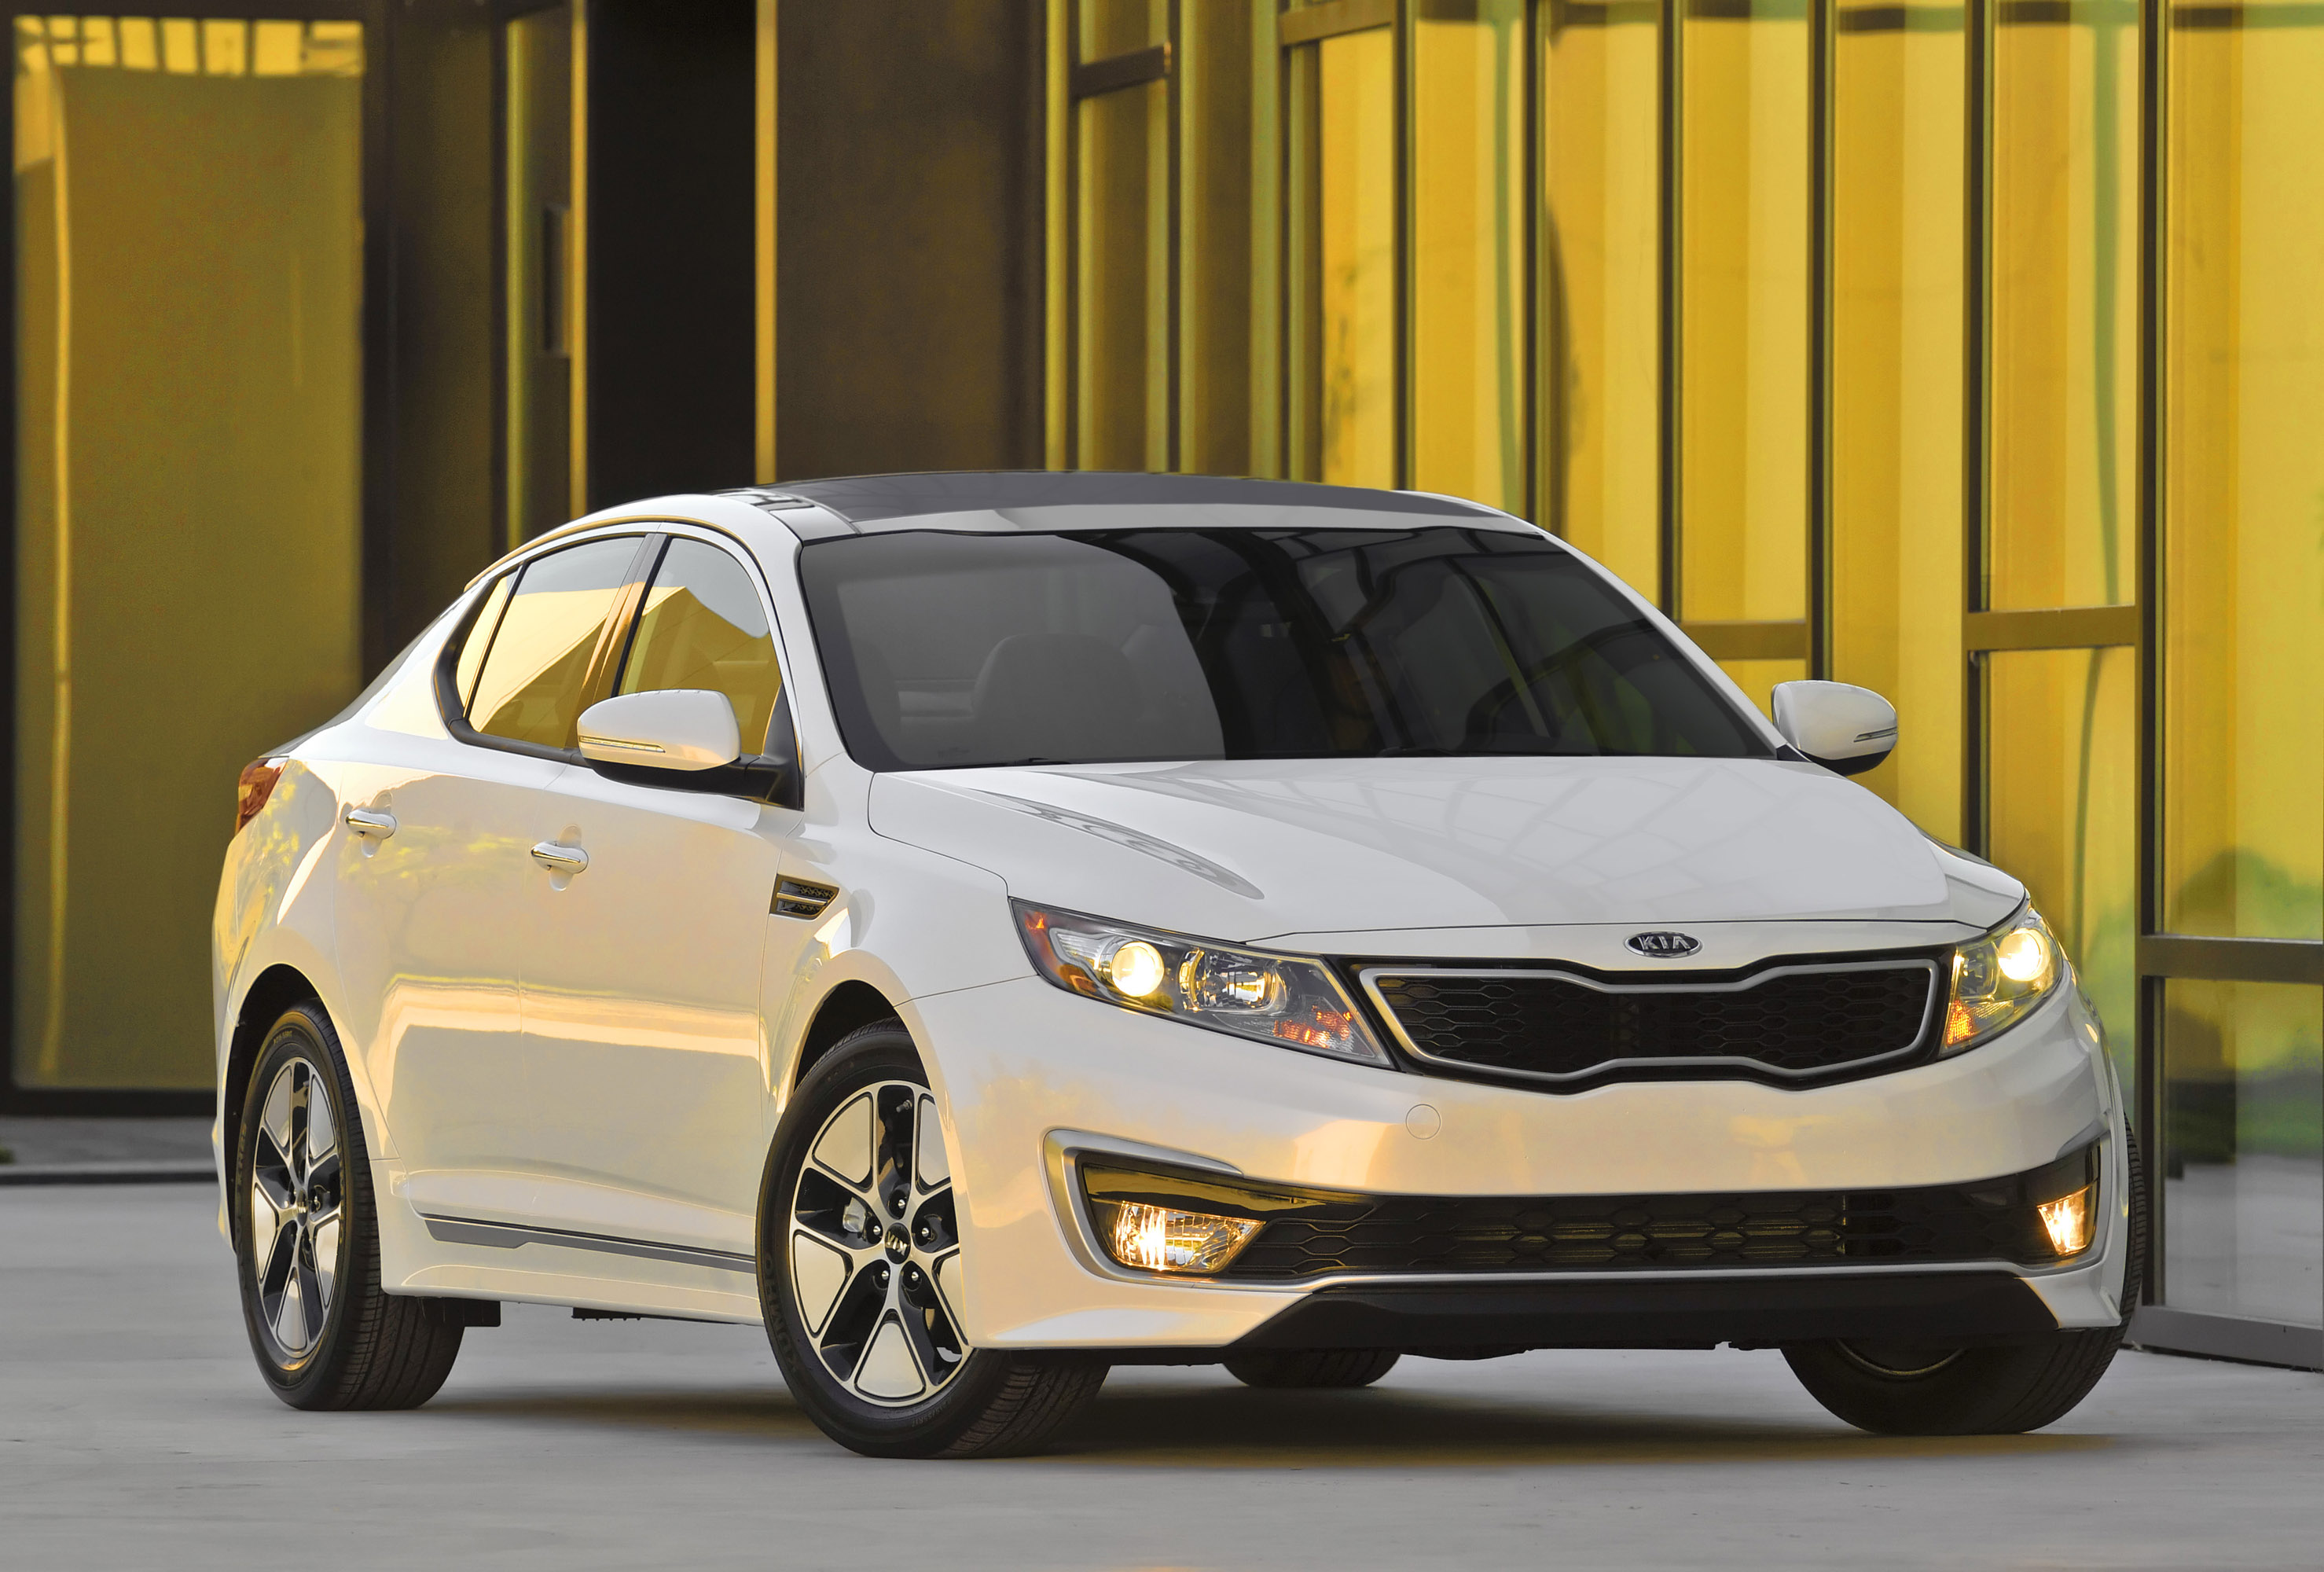 com articles us bestcarmag sx specification informations kia hybrid makes photos optima